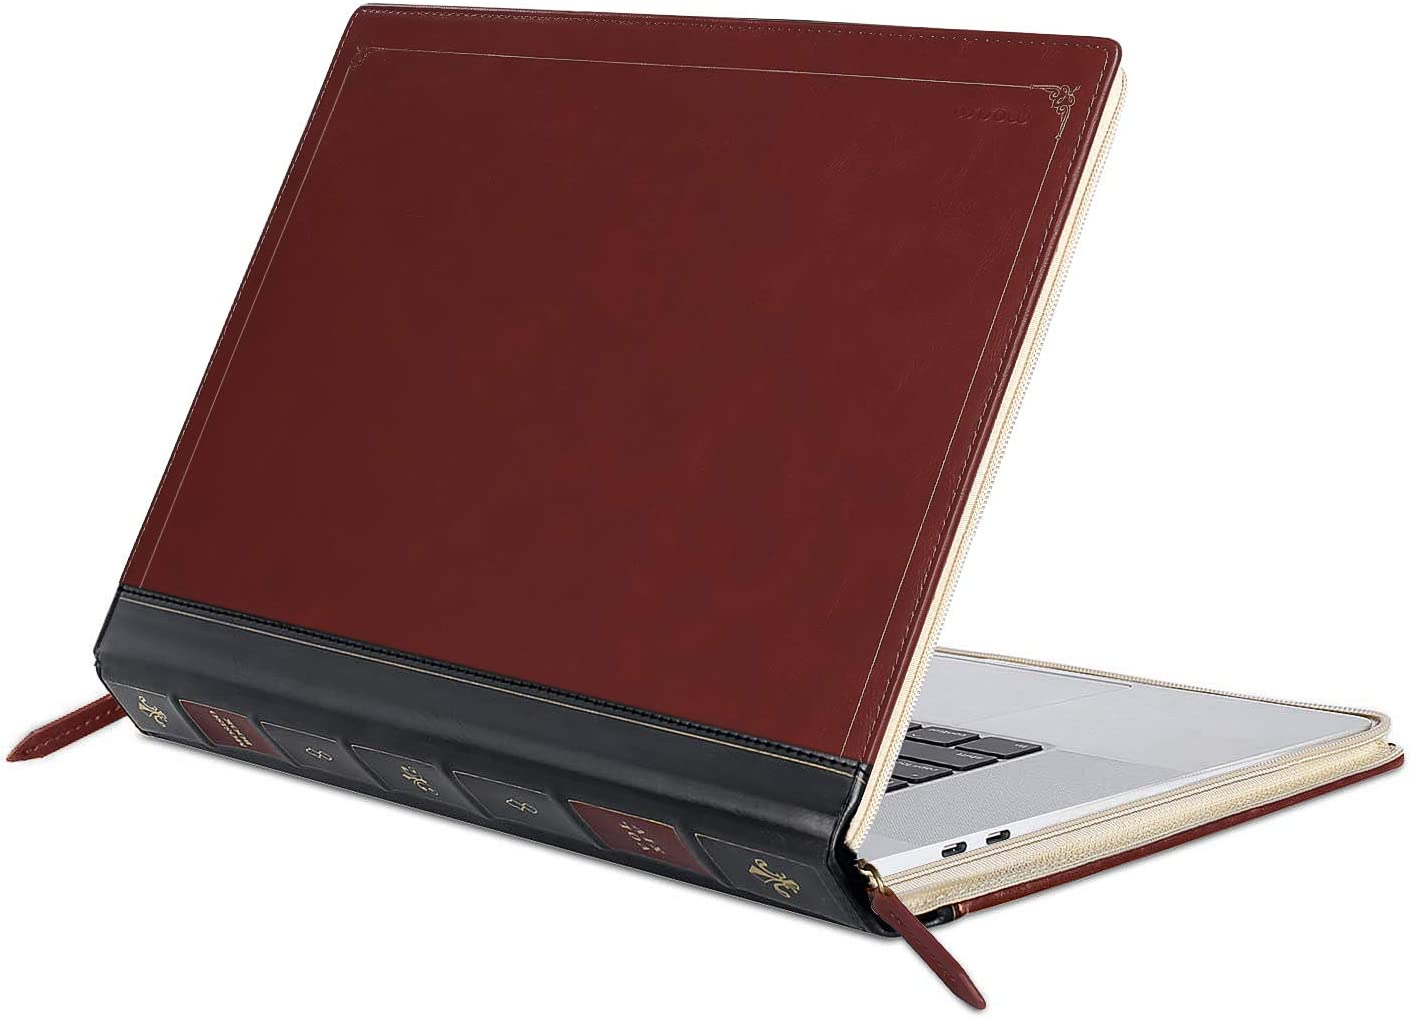 MOSISO MacBook Pro 16 inch Case 2019 Release A2141 with Touch Bar & Touch ID, PU Leather Laptop Sleeve Vintage Retro Zippered Book Folio Protective Cover Compatible with MacBook Pro 16 inch, Wine Red